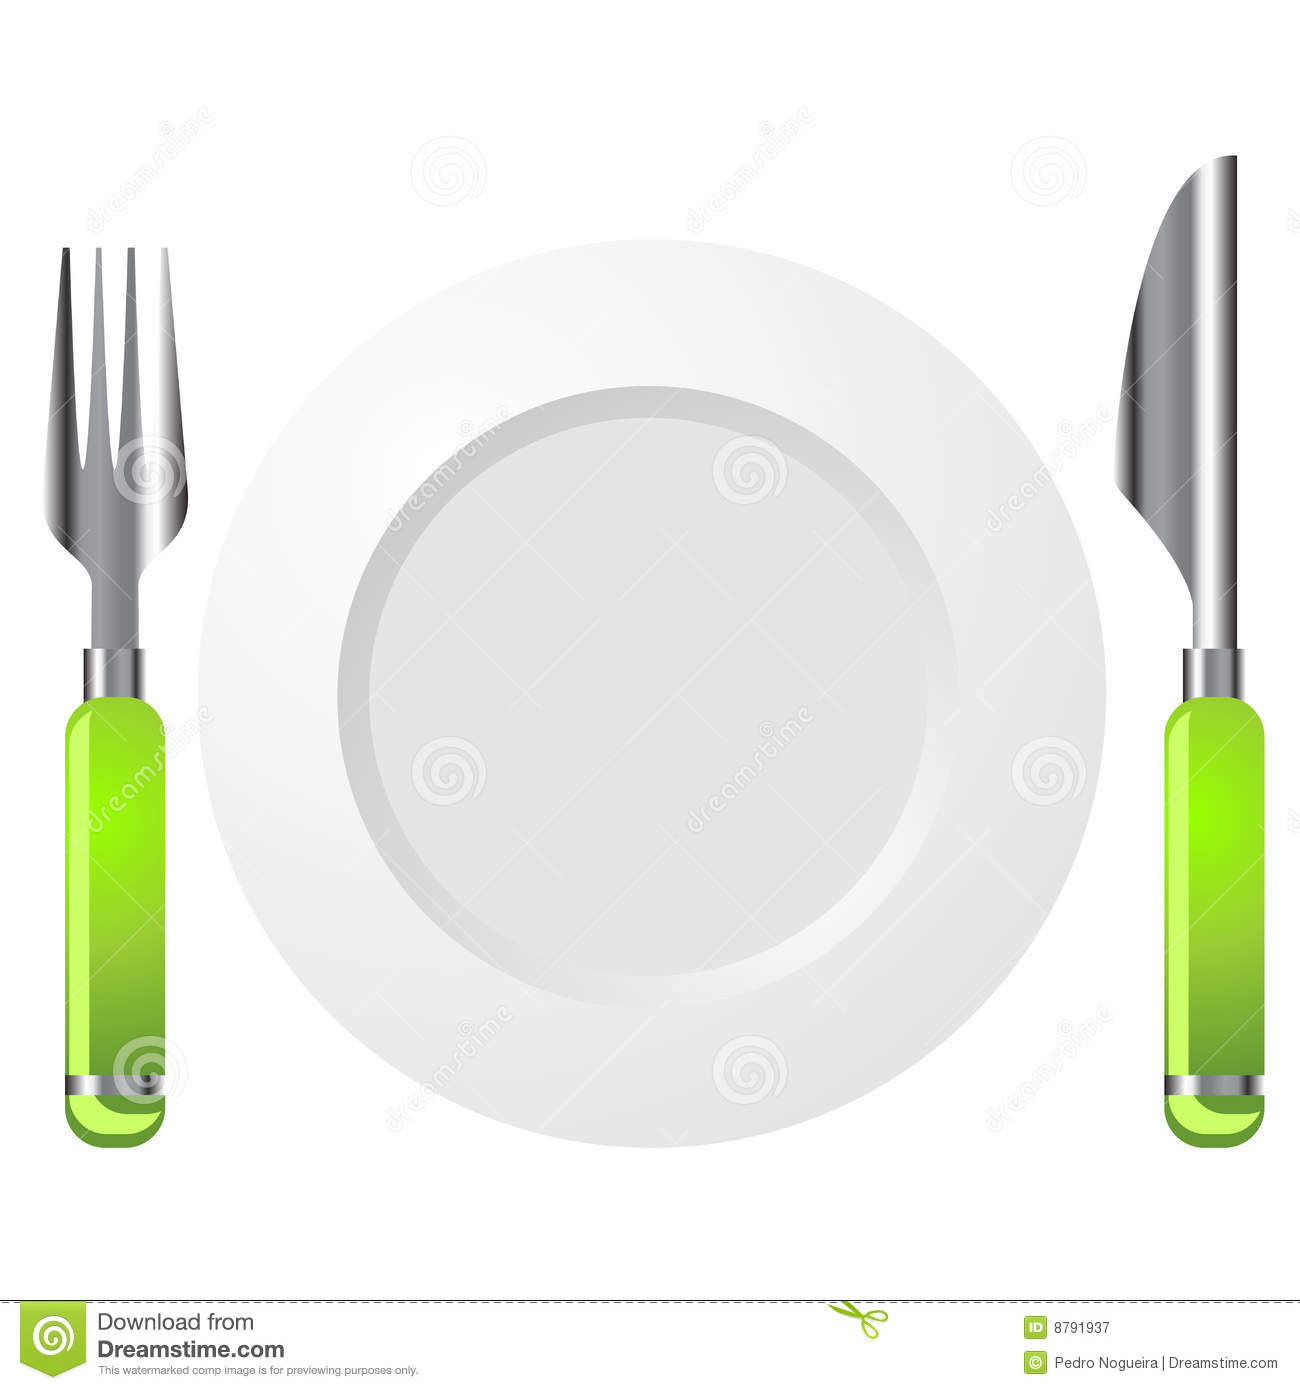 Knife Fork And Plate Isolated Over White Background Mr No Pr No 3 727